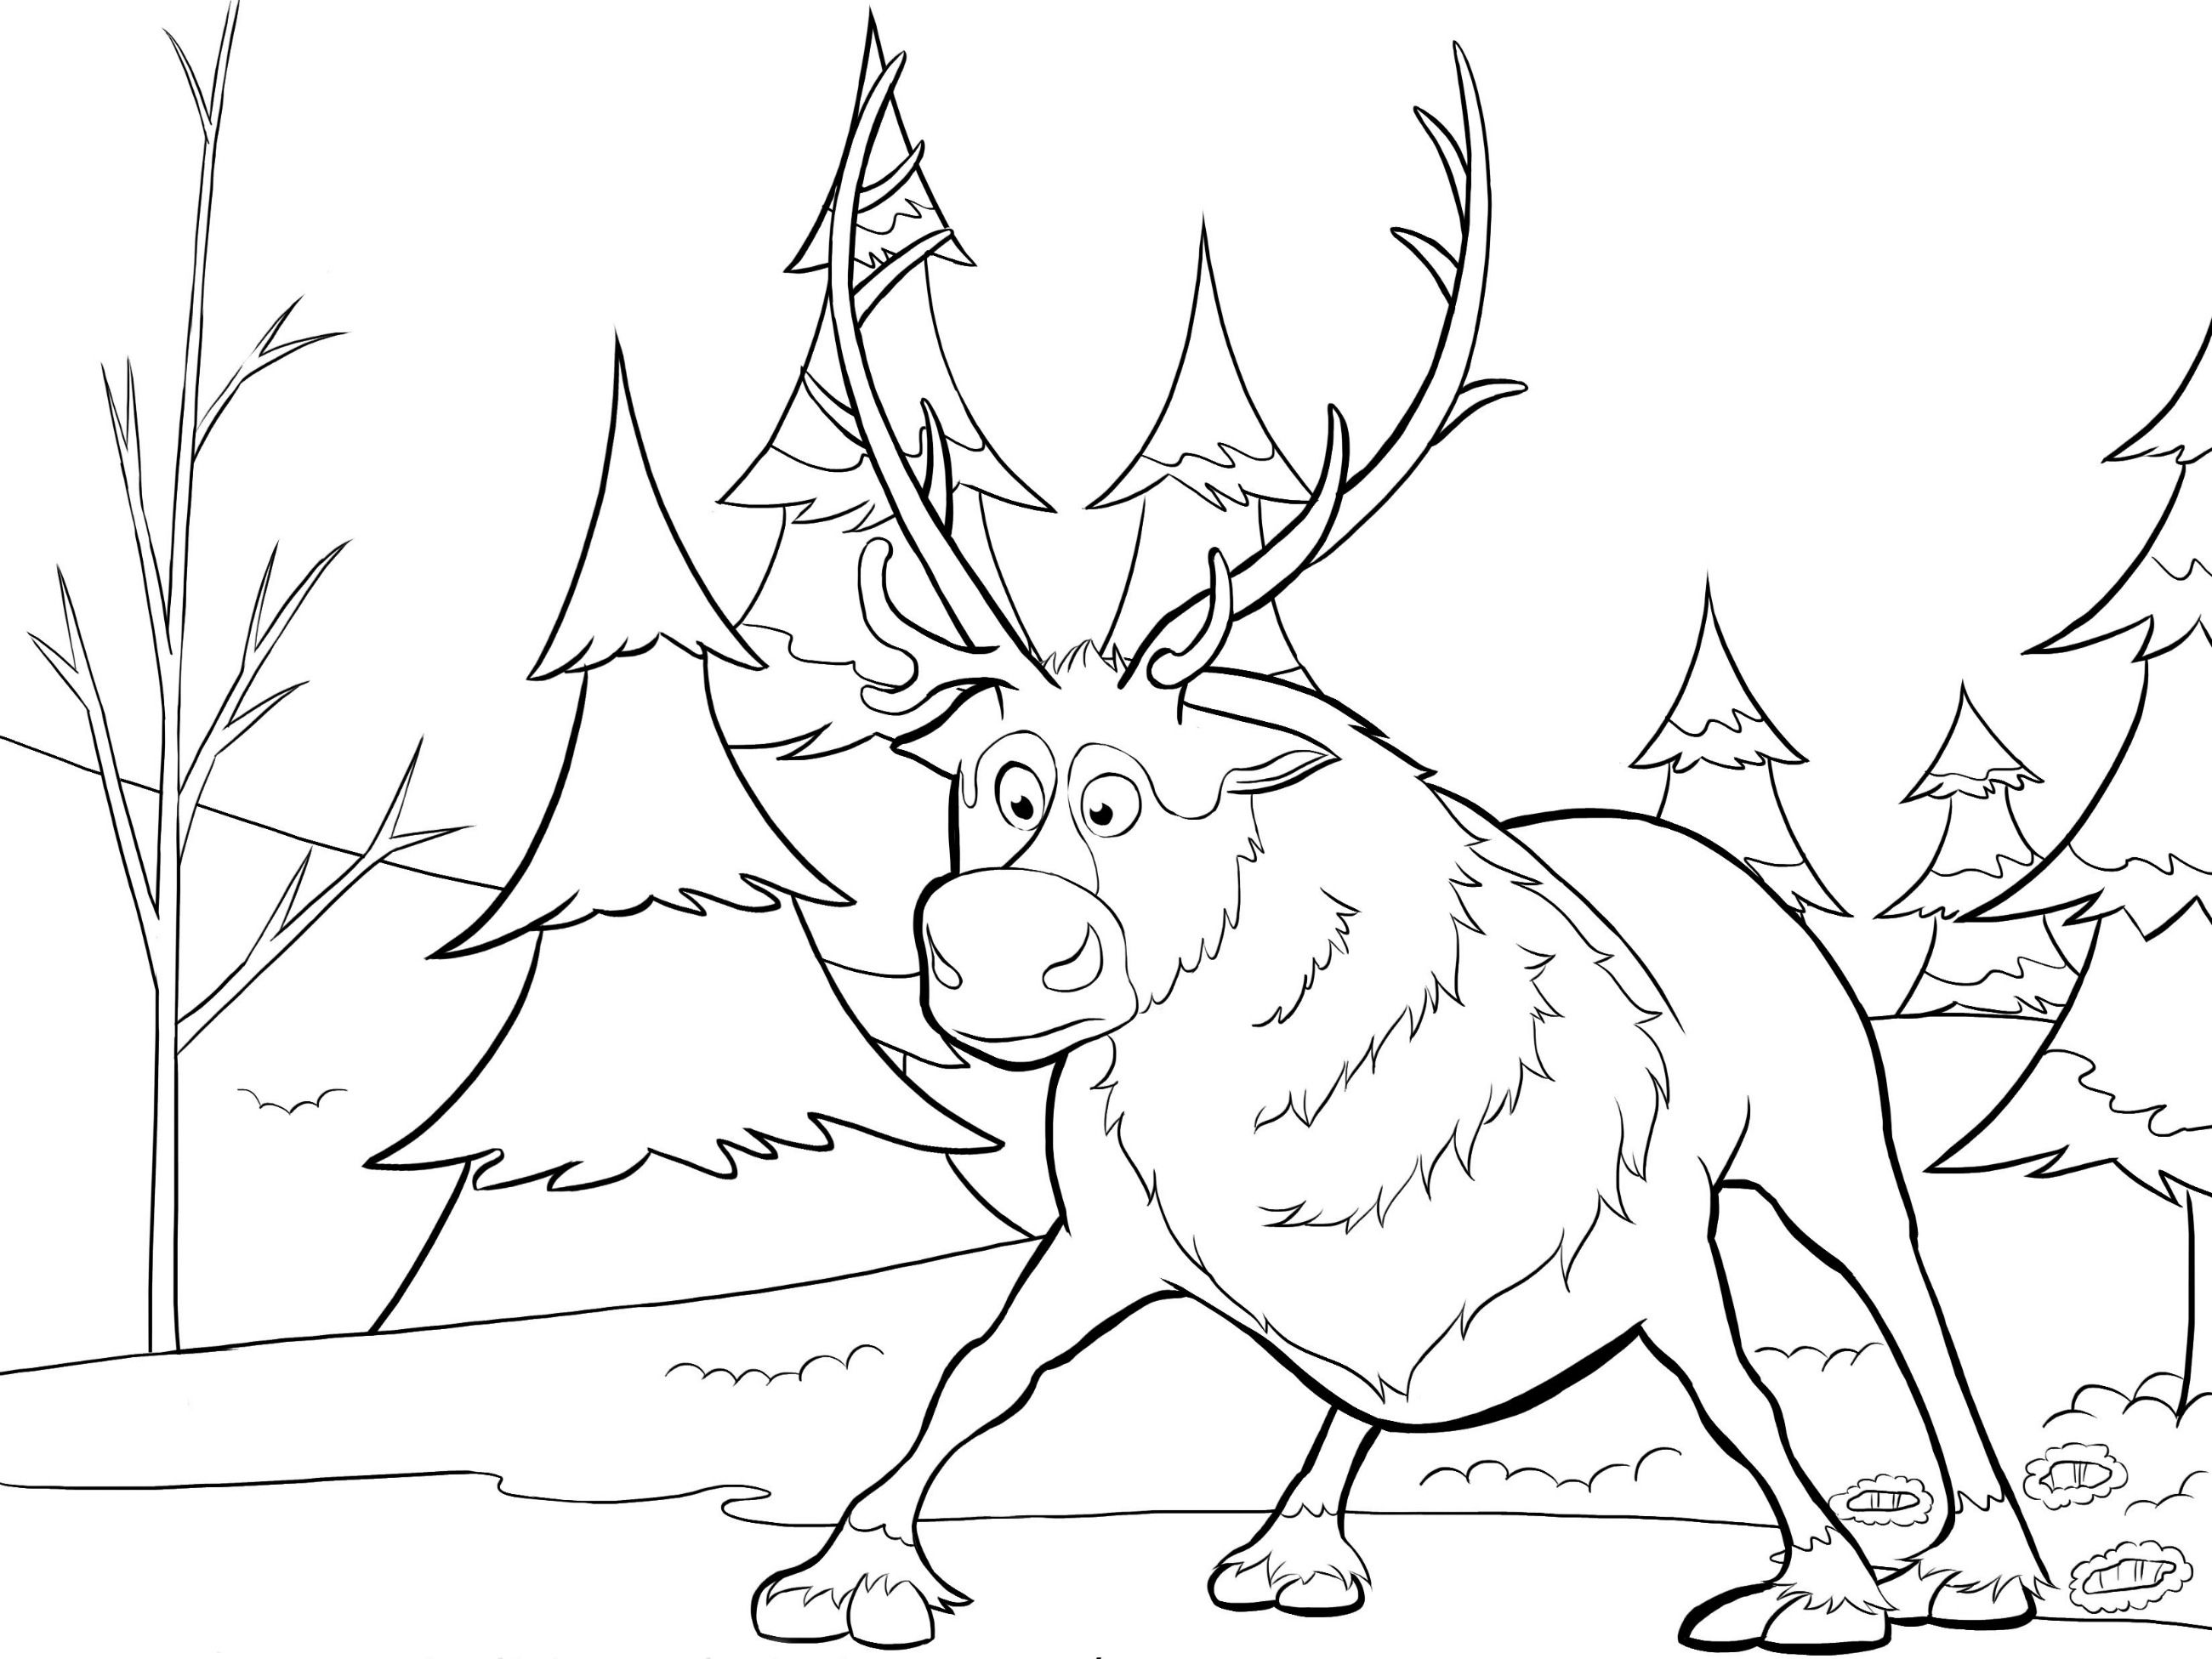 sven from frozen coloring page kids colouring pages